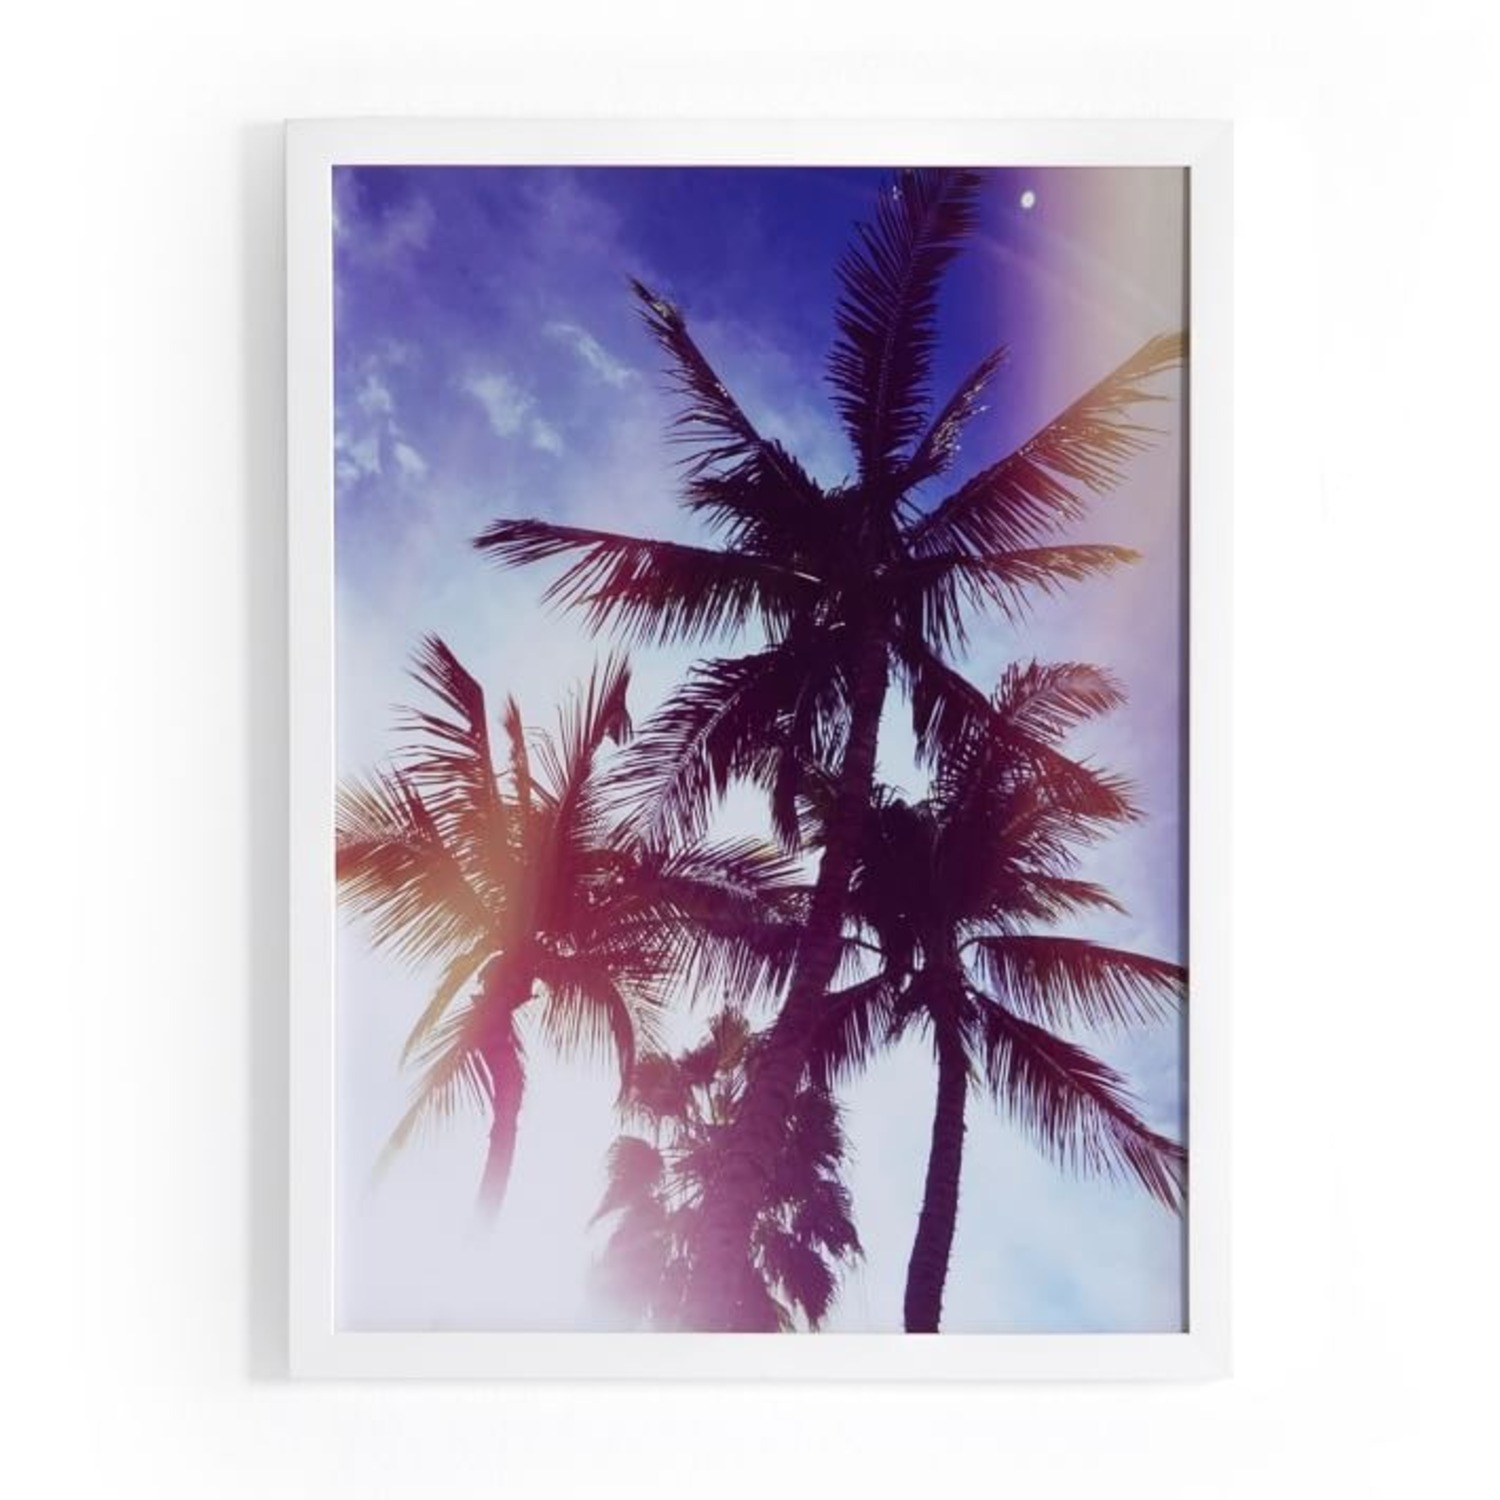 West Elm Palm Trees III by Erica Singleton - image-2